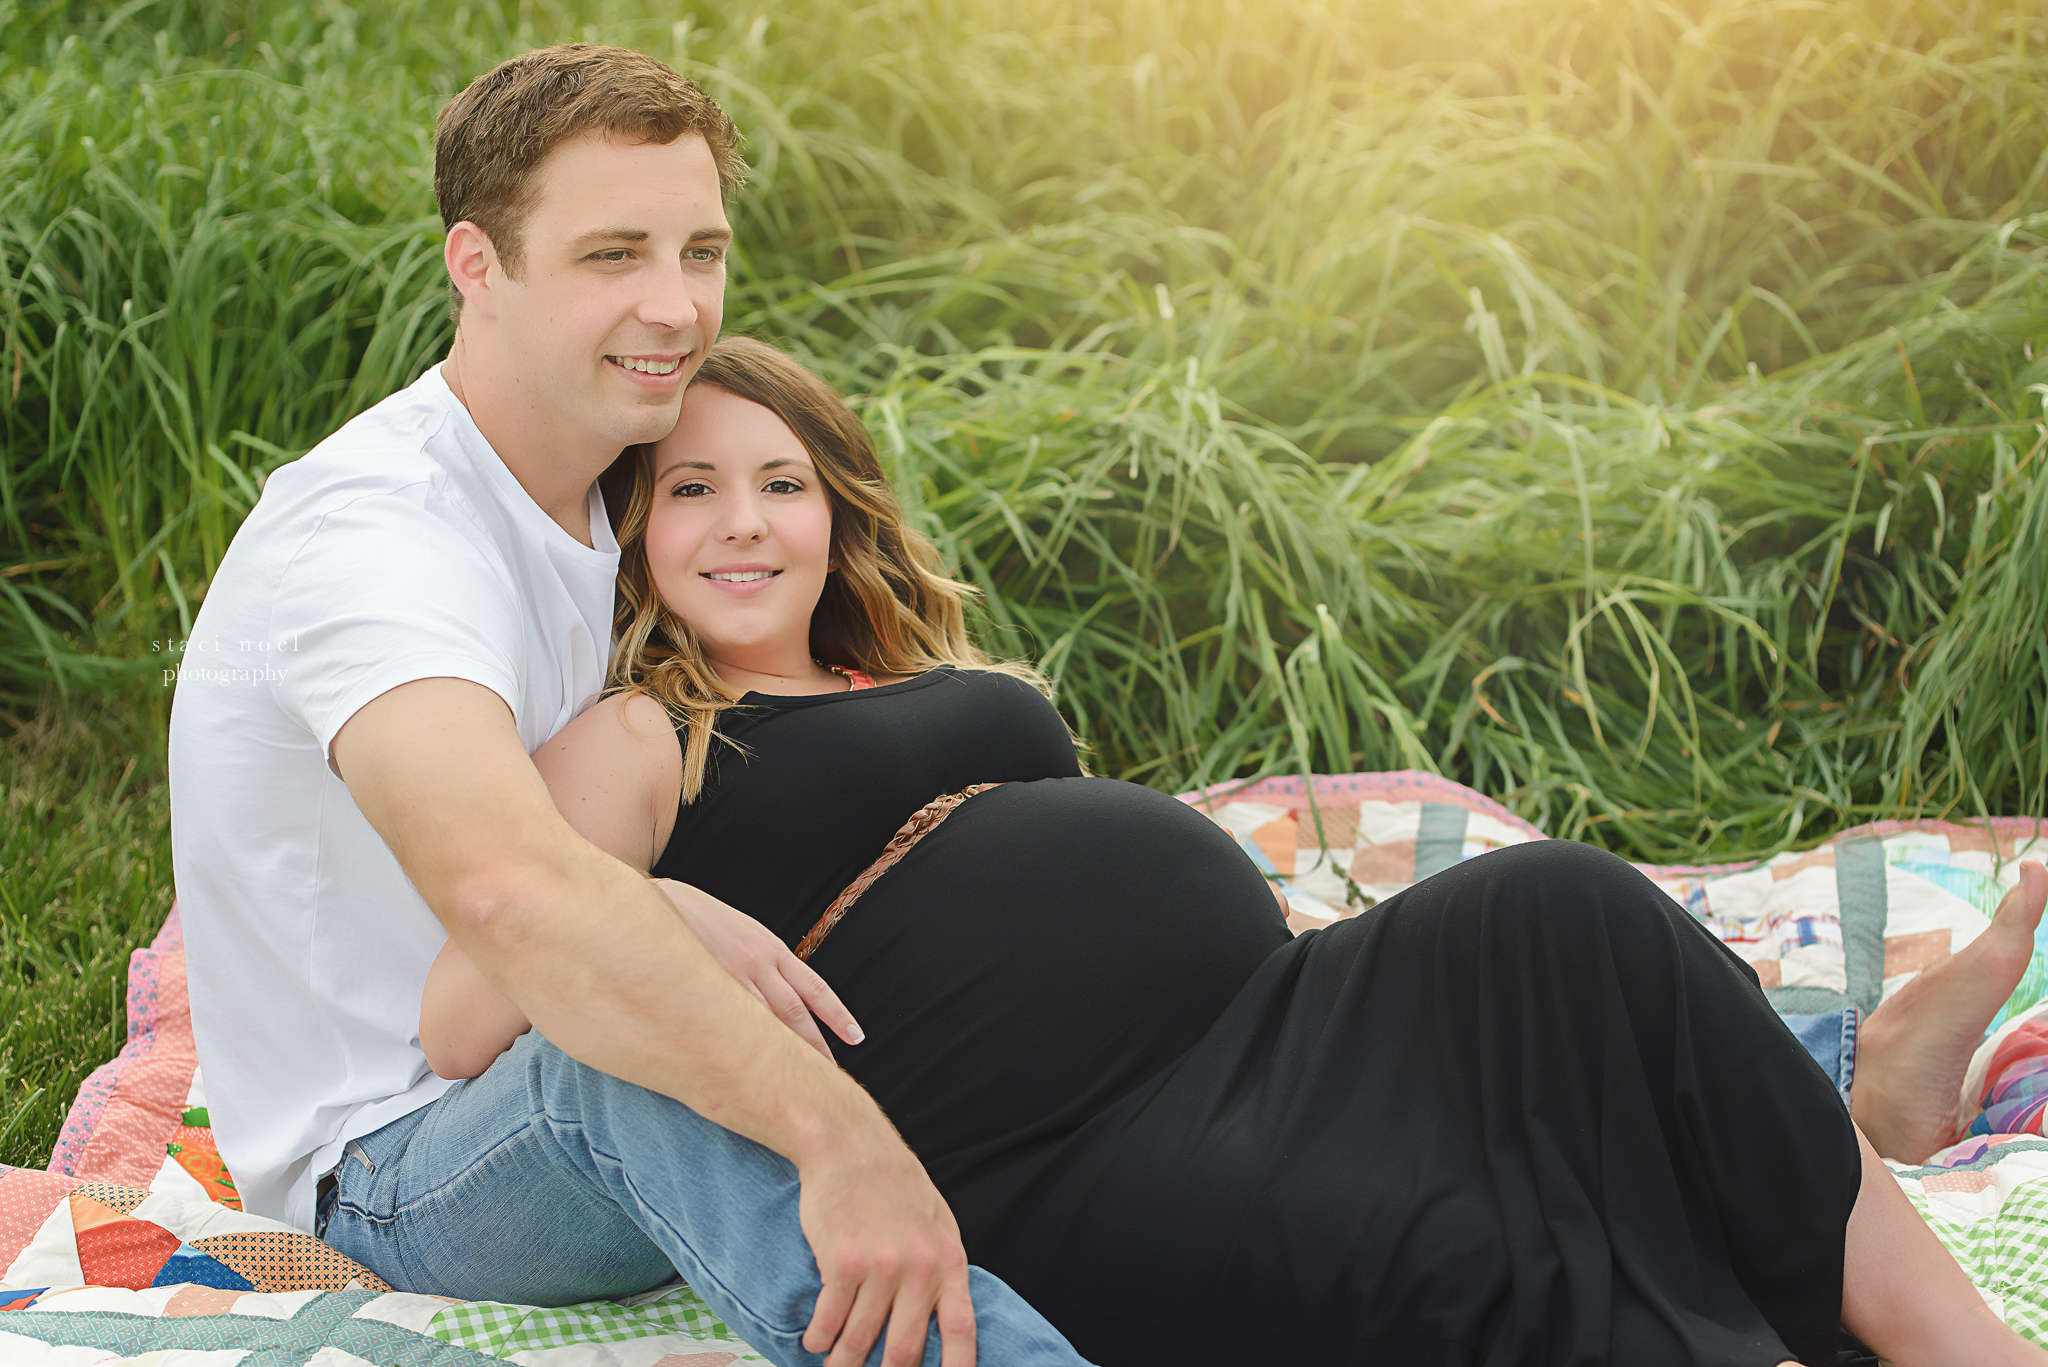 charlotte maternity photographer | outdoor field maternity